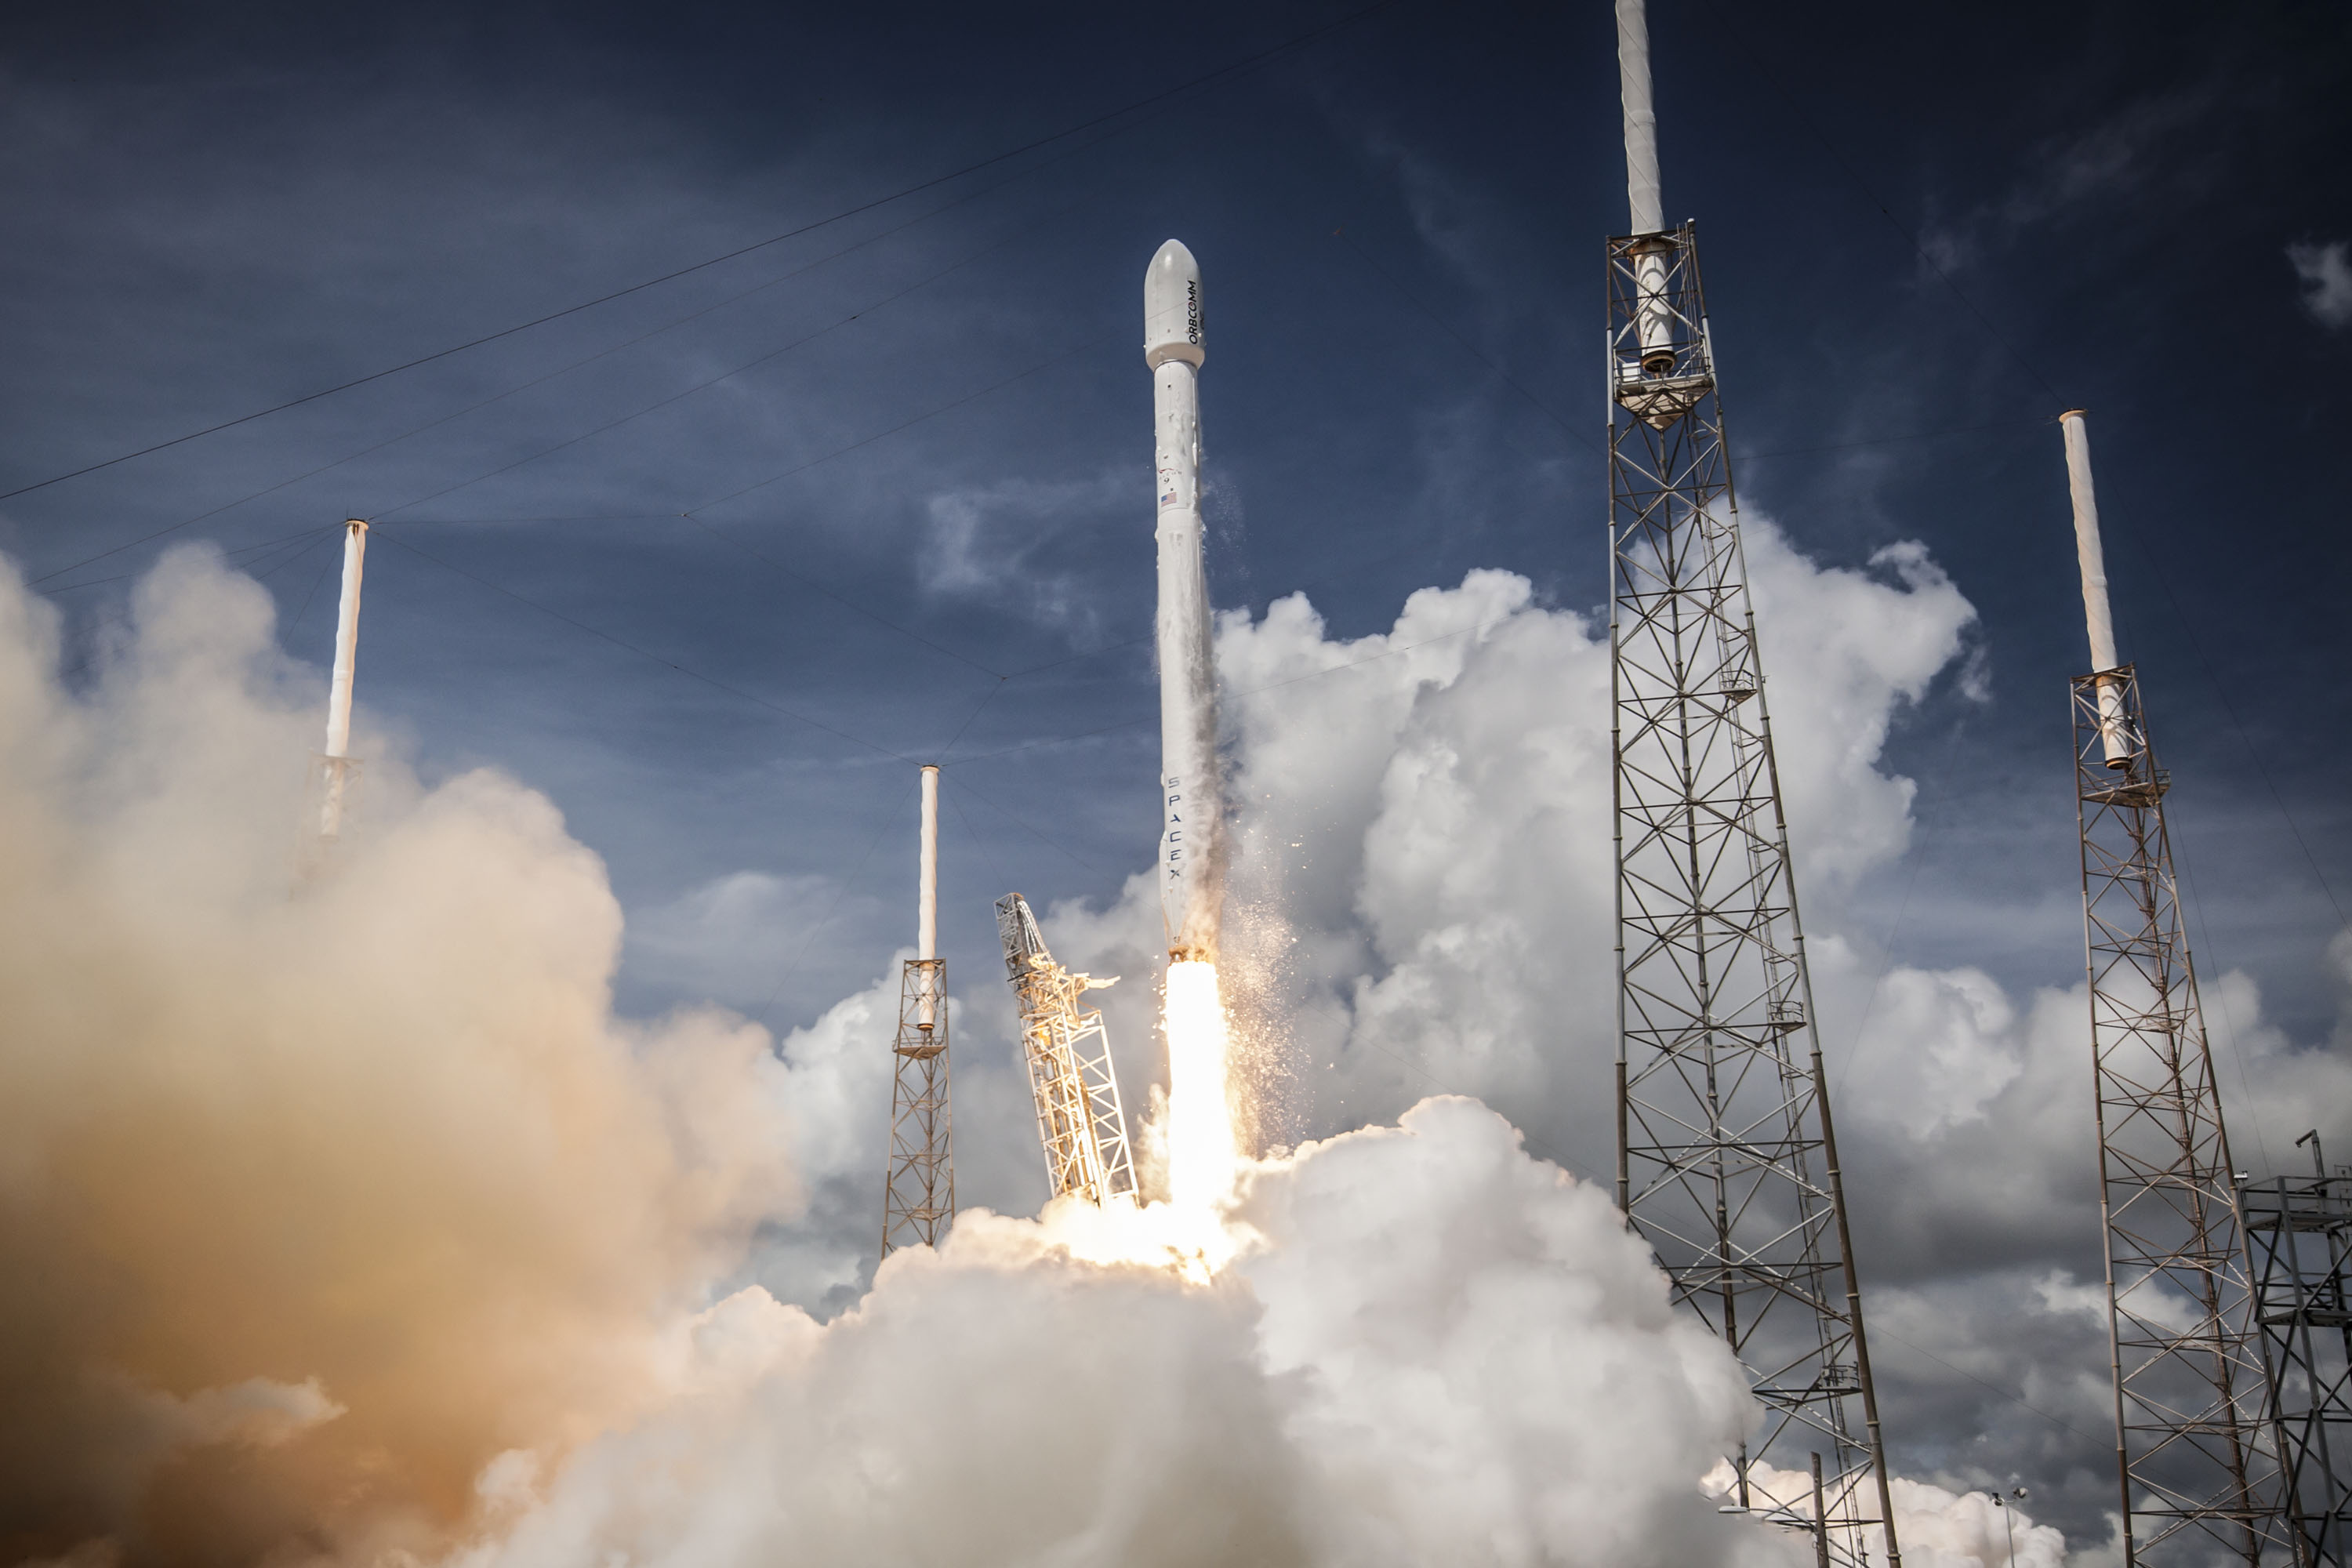 spacex widescreen wallpaper 59808